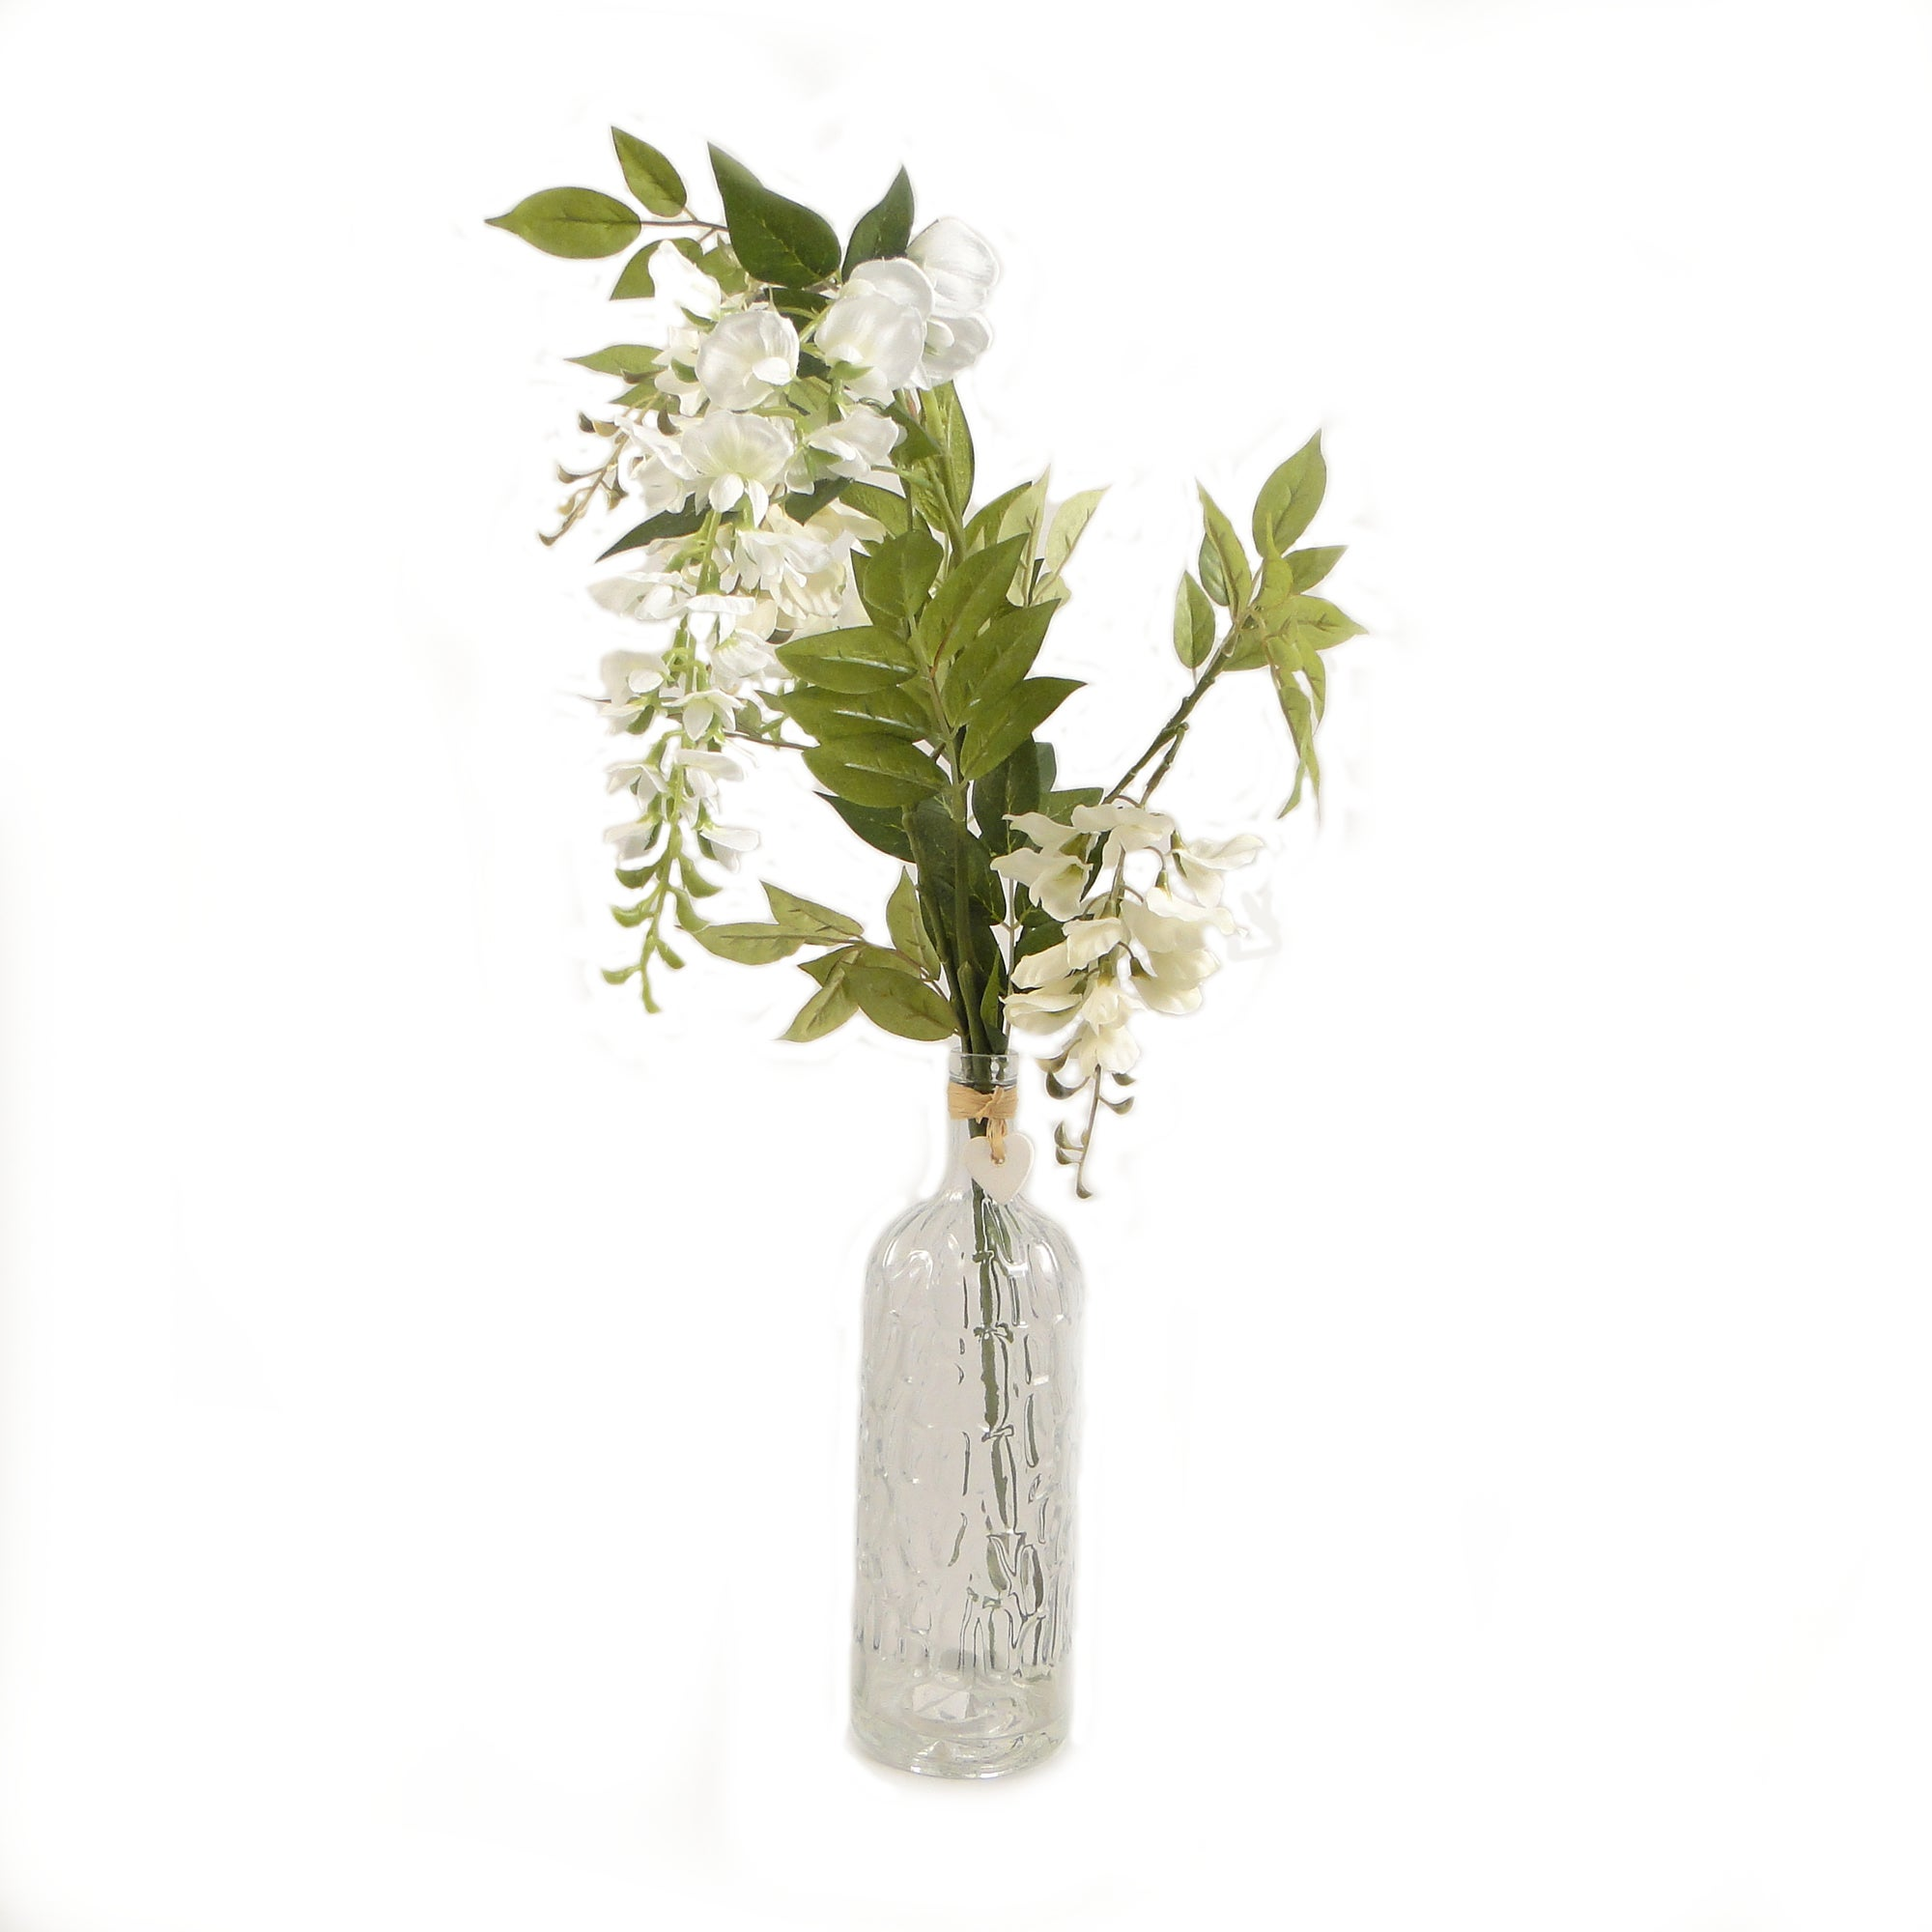 Artificial Cream Wisteria in a Glass Bottle